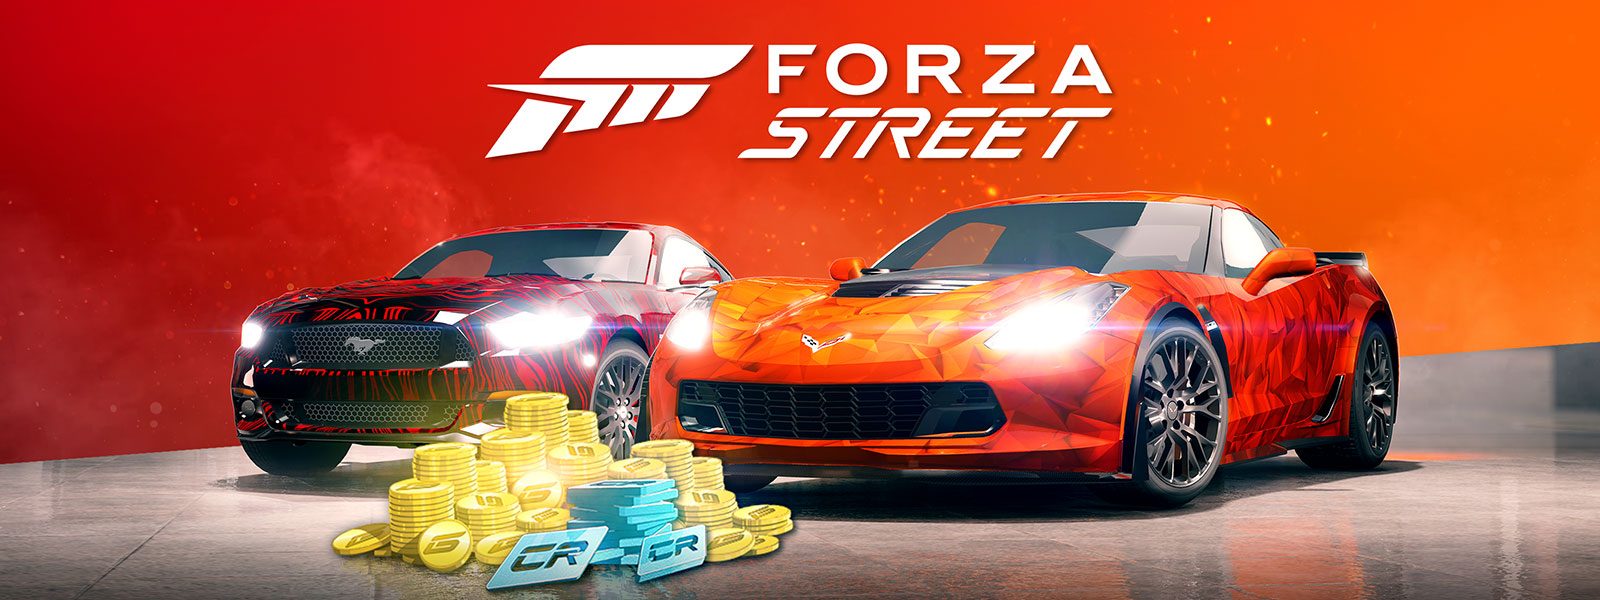 Forza Street logo, 2015 Ford Mustang and 2015 C7 Corvette Z06 with gold coins and credits